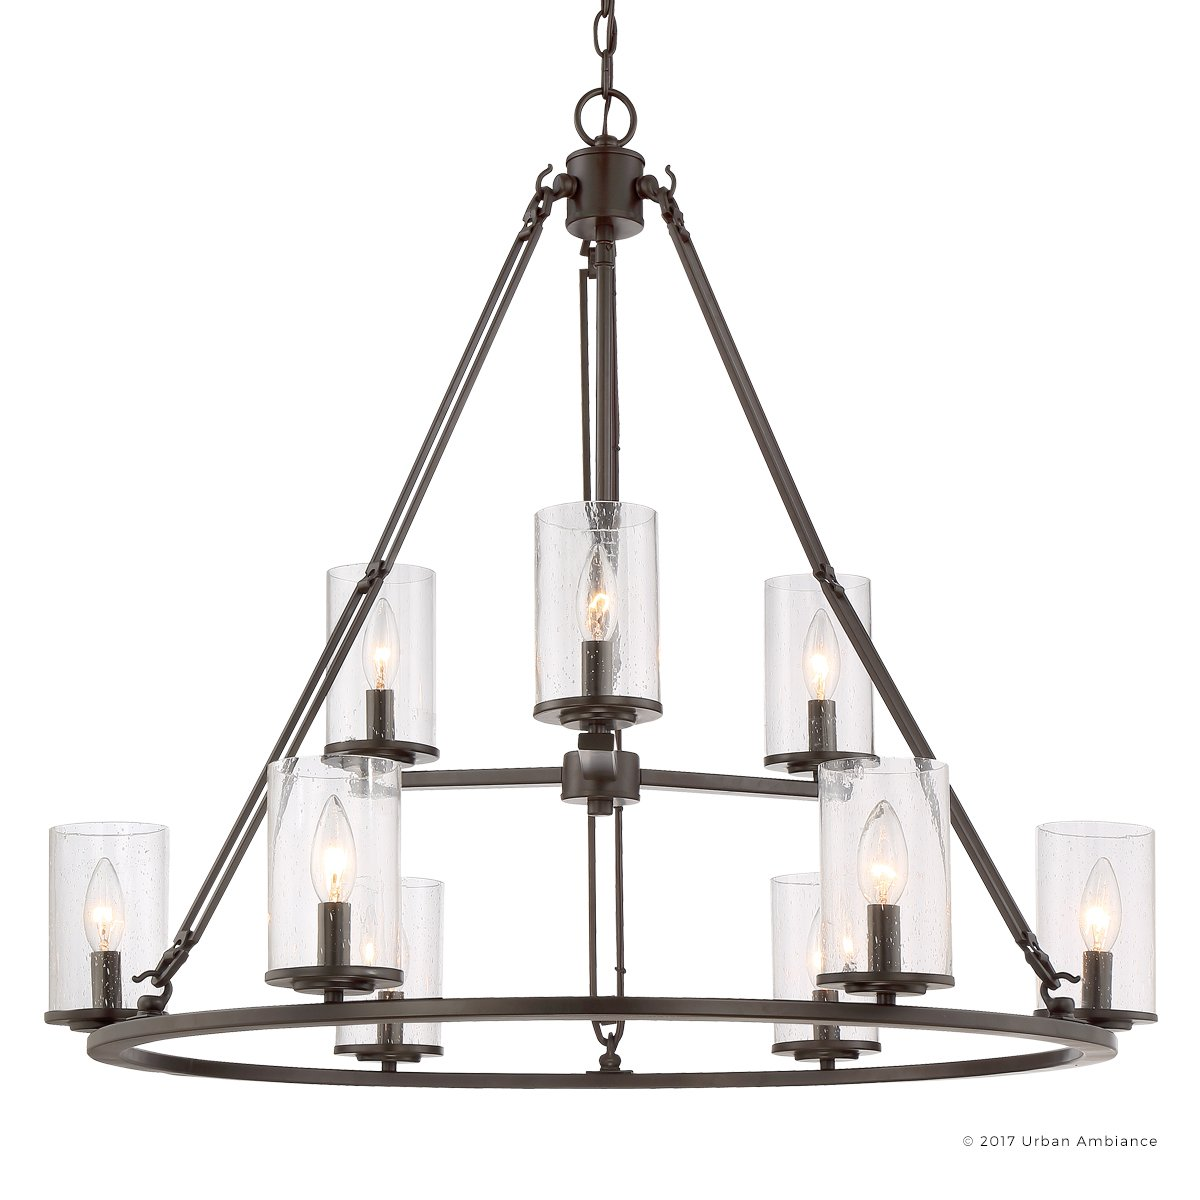 Luxury Industrial Chandelier, Large Size: 30''H x 33''W, with Western Style Elements, Rectangular Link Design, Elegant Estate Bronze Finish and Seeded Glass, UQL2131 by Urban Ambiance